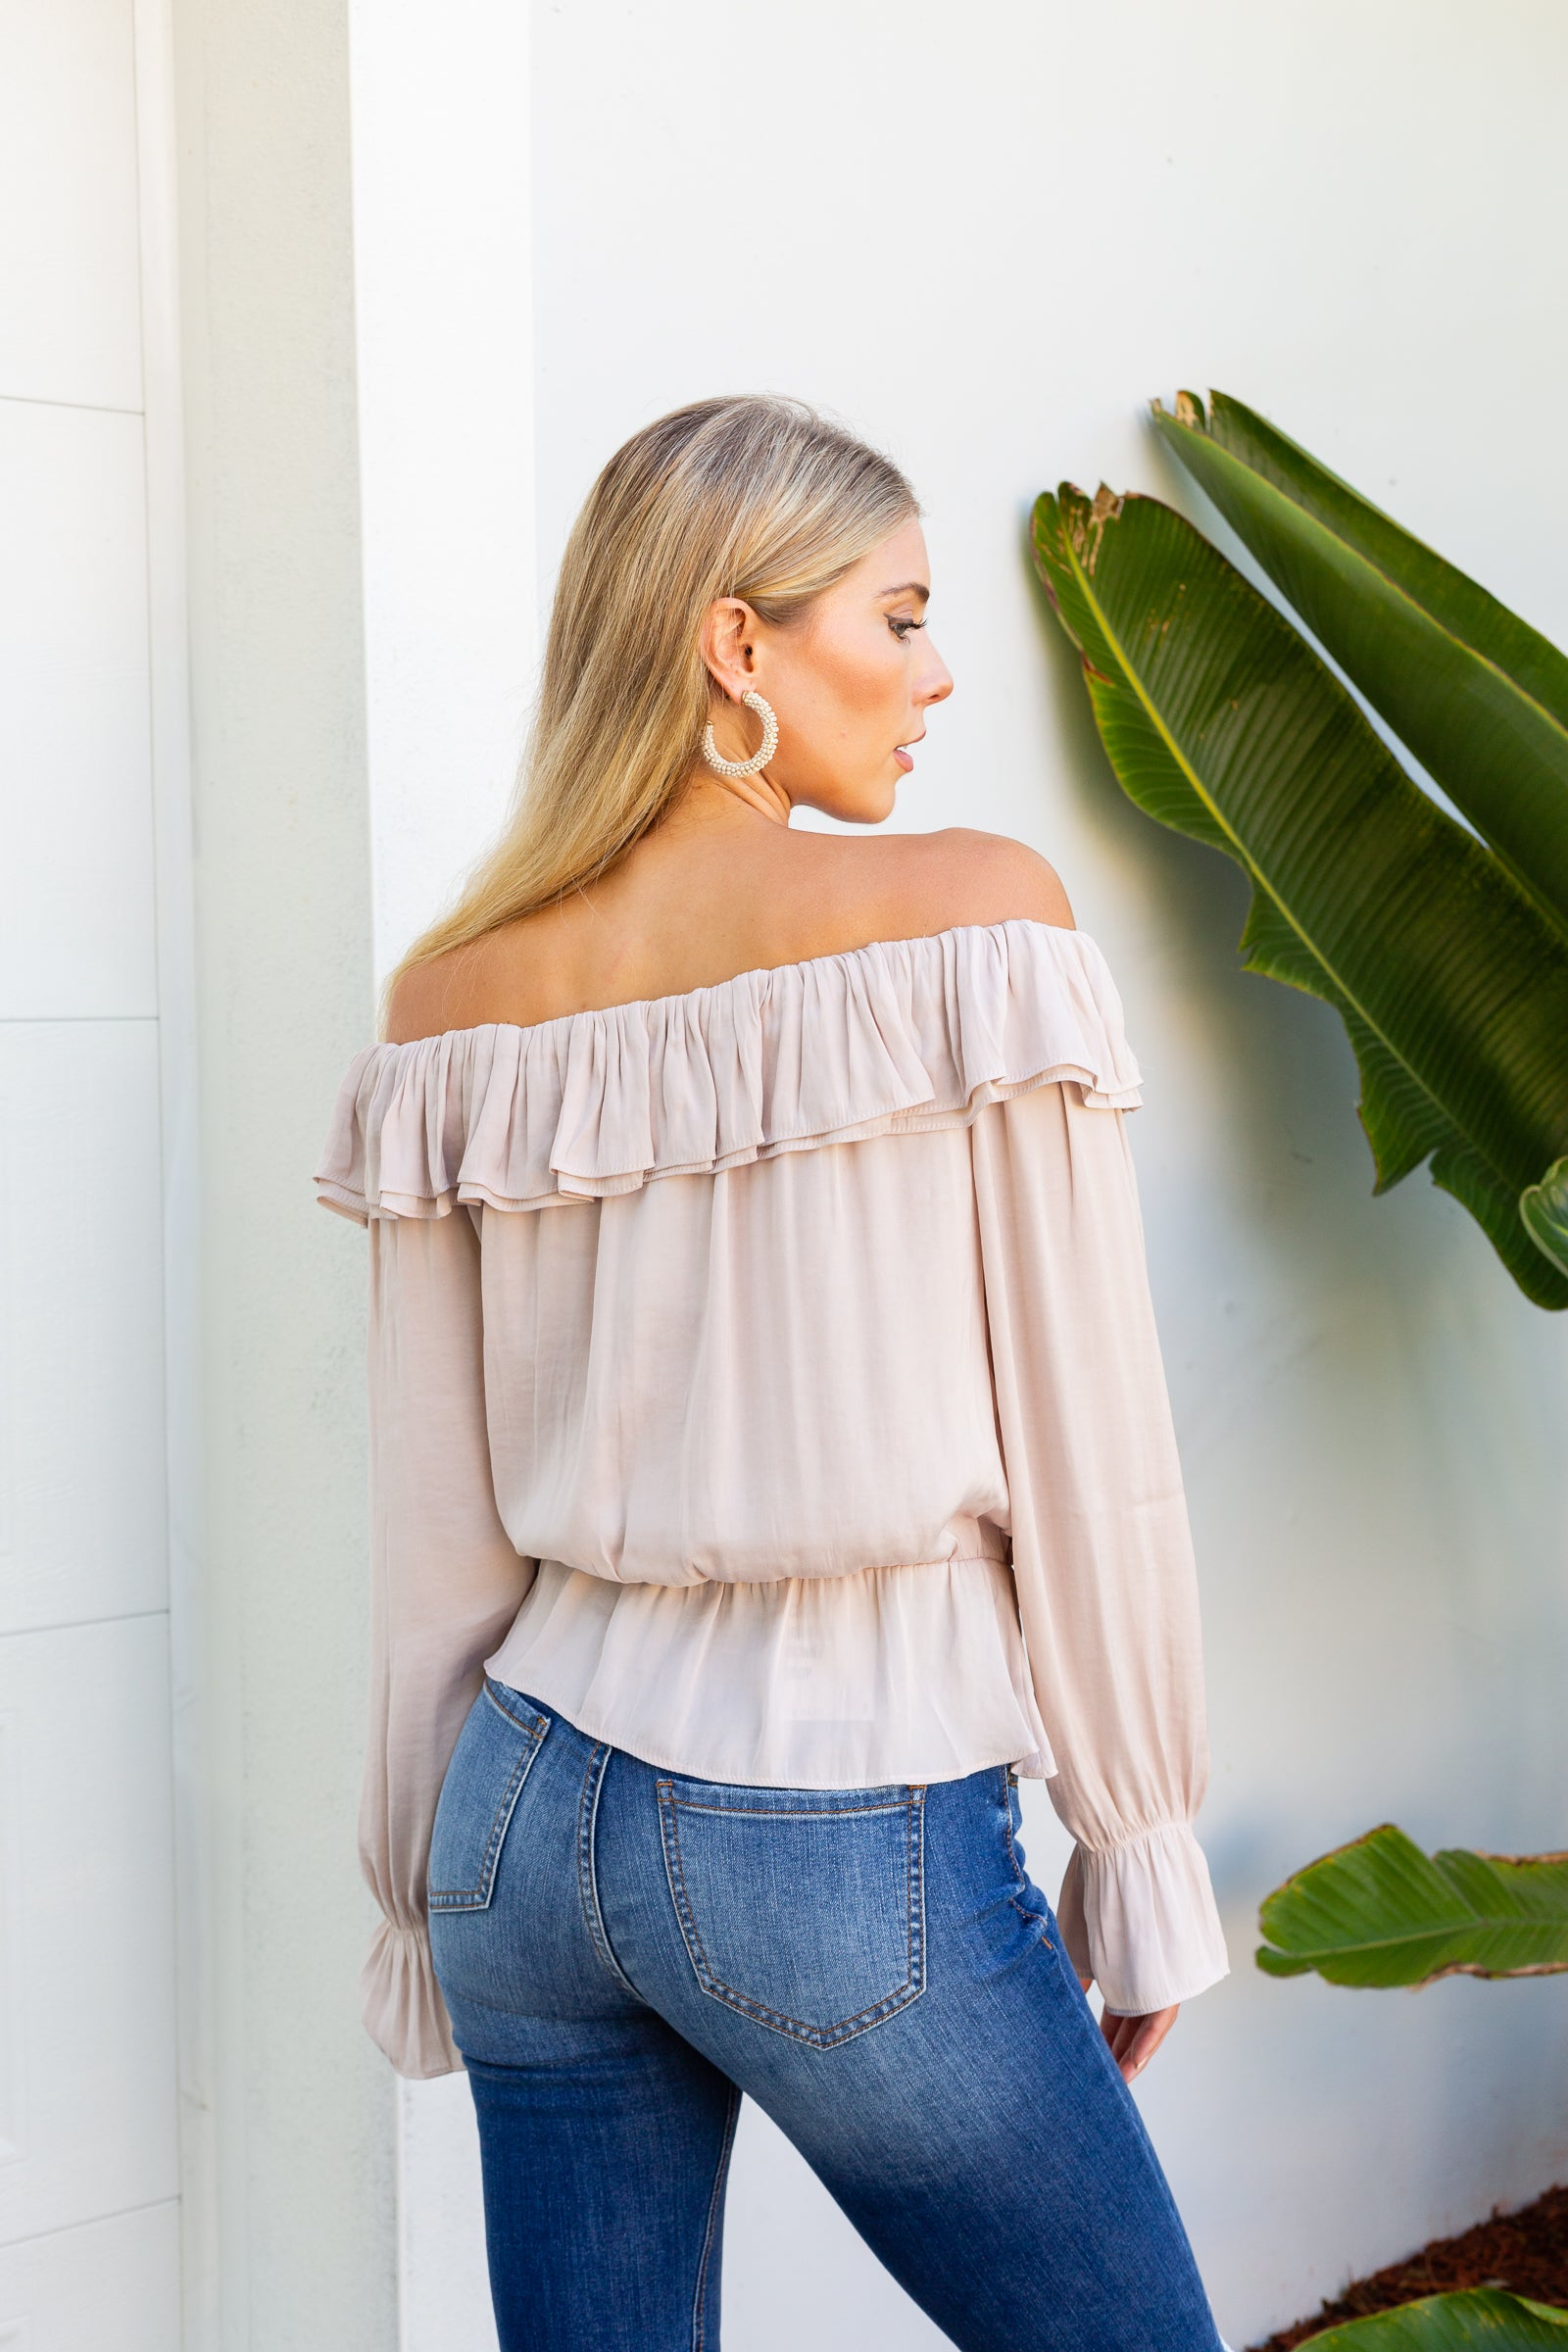 Long elastic ruffle cuffed sleeves attach to a boat neckline with layered ruffle hem on an oversized and loose bodice silhouette and meets an elastic waistband that flares into a peplum style hem.